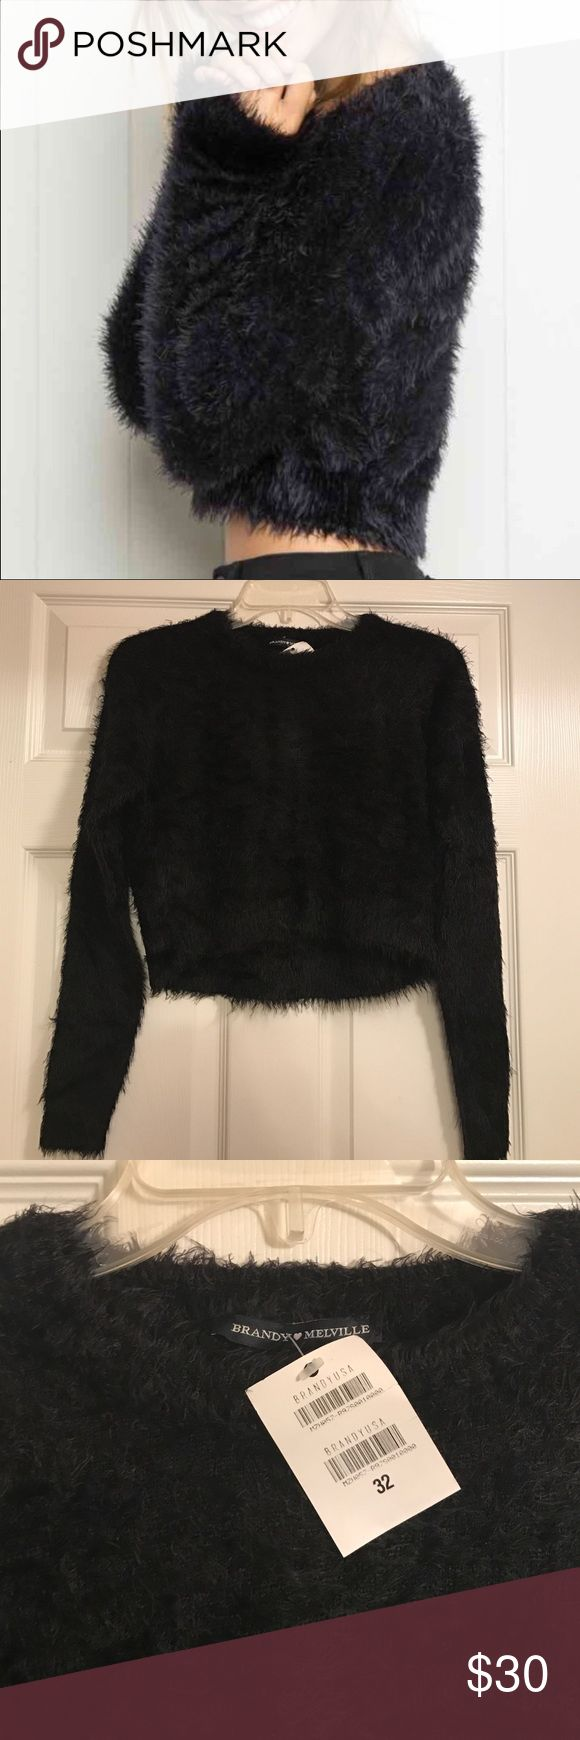 Brandy Melville cropped sweater XS S New with tags fuzzy sweater. Will fit XS-S  . Crew neck. 100% polyamide Brandy Melville Sweaters Crew & Scoop Necks